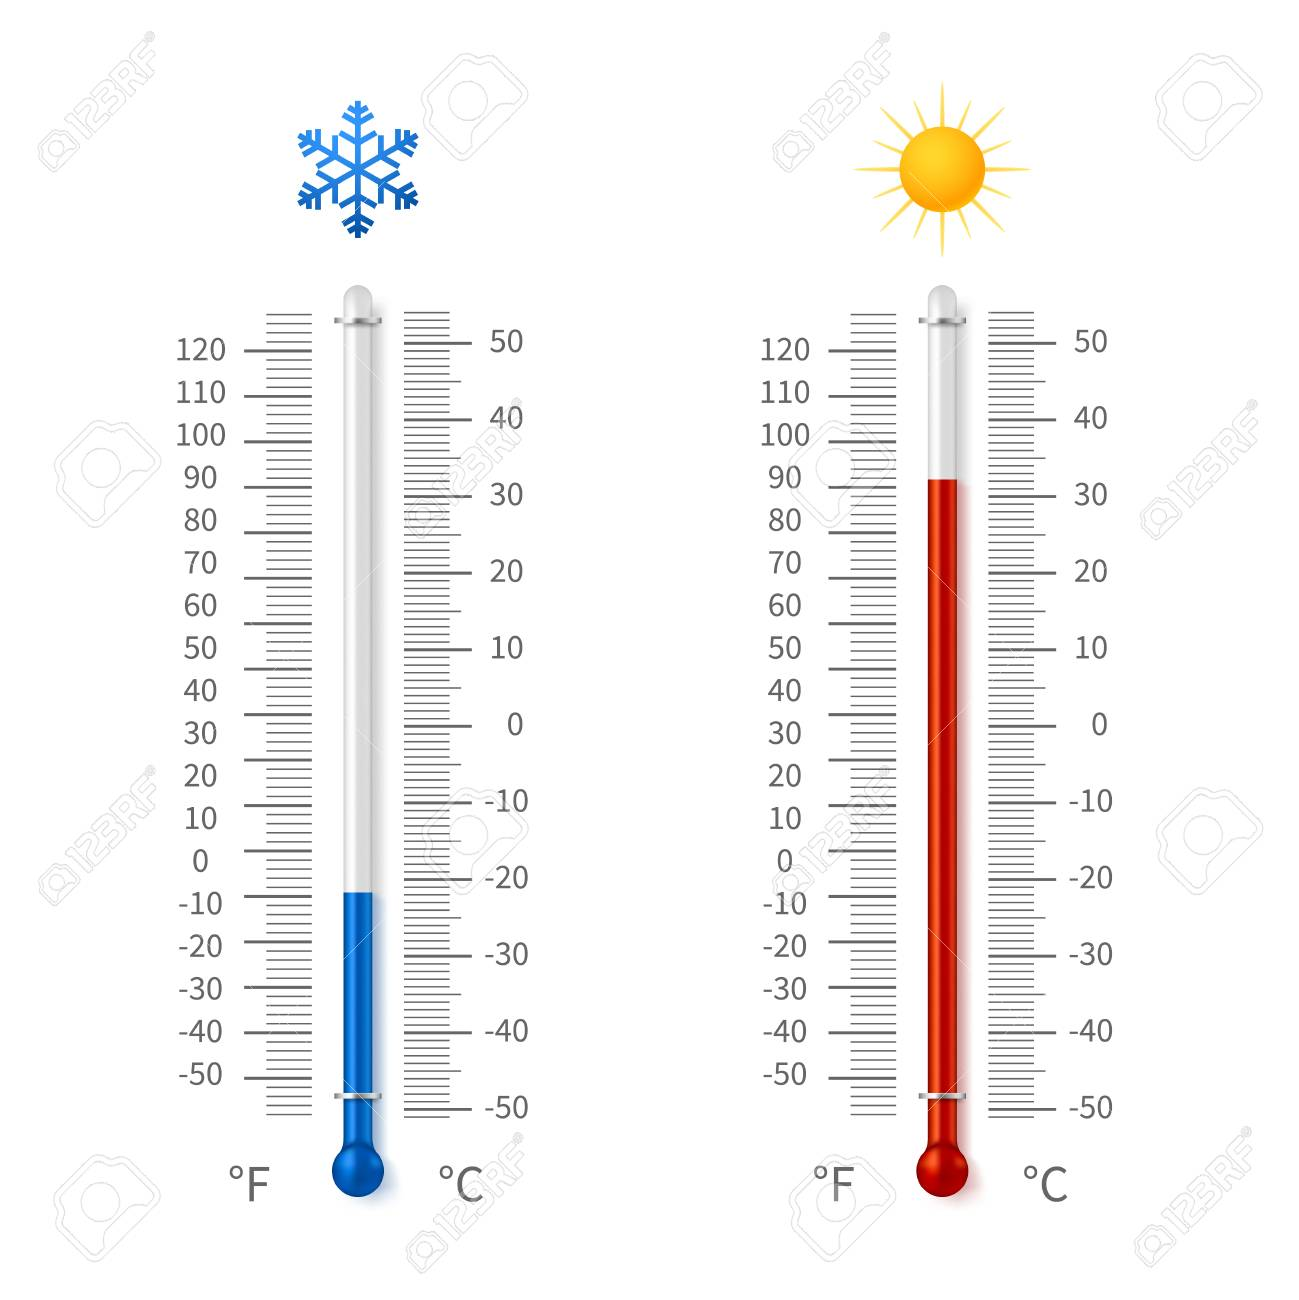 Hot And Cold Weather Temperature Symbols Meteorology Thermometers